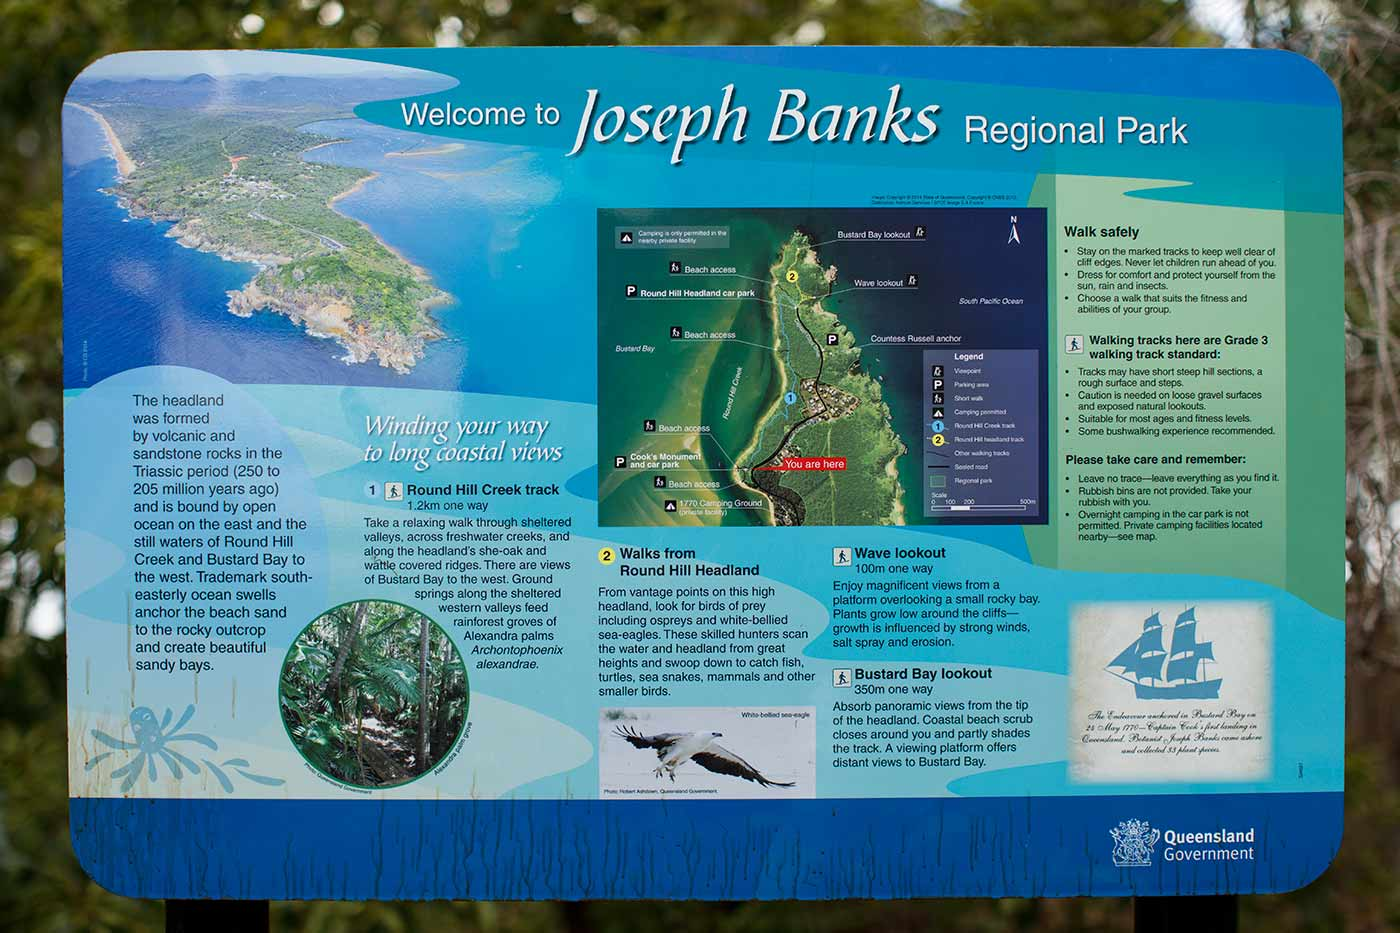 Colour photo of a tourist sign by the Queensland Government with the title 'Welcome to Joseph Banks Regional Park'. It provides a map and legend, descriptive text and images. - click to view larger image